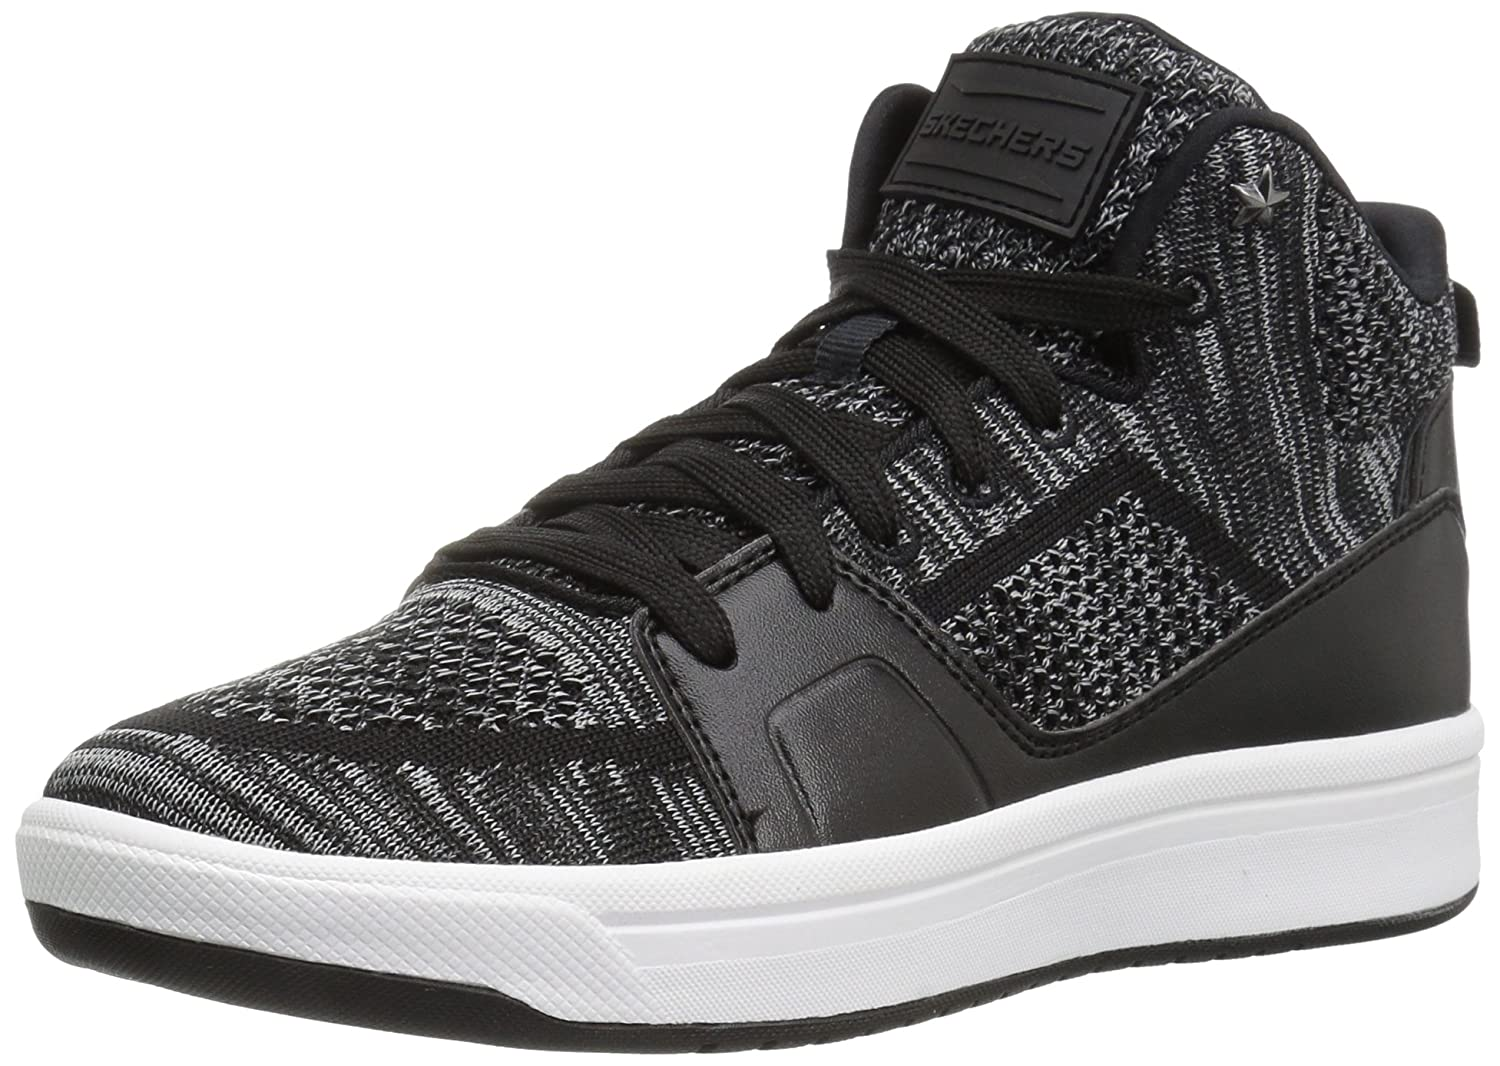 noir 11 B(M) US Skechers Wohommes Downtown-Fly High mode paniers